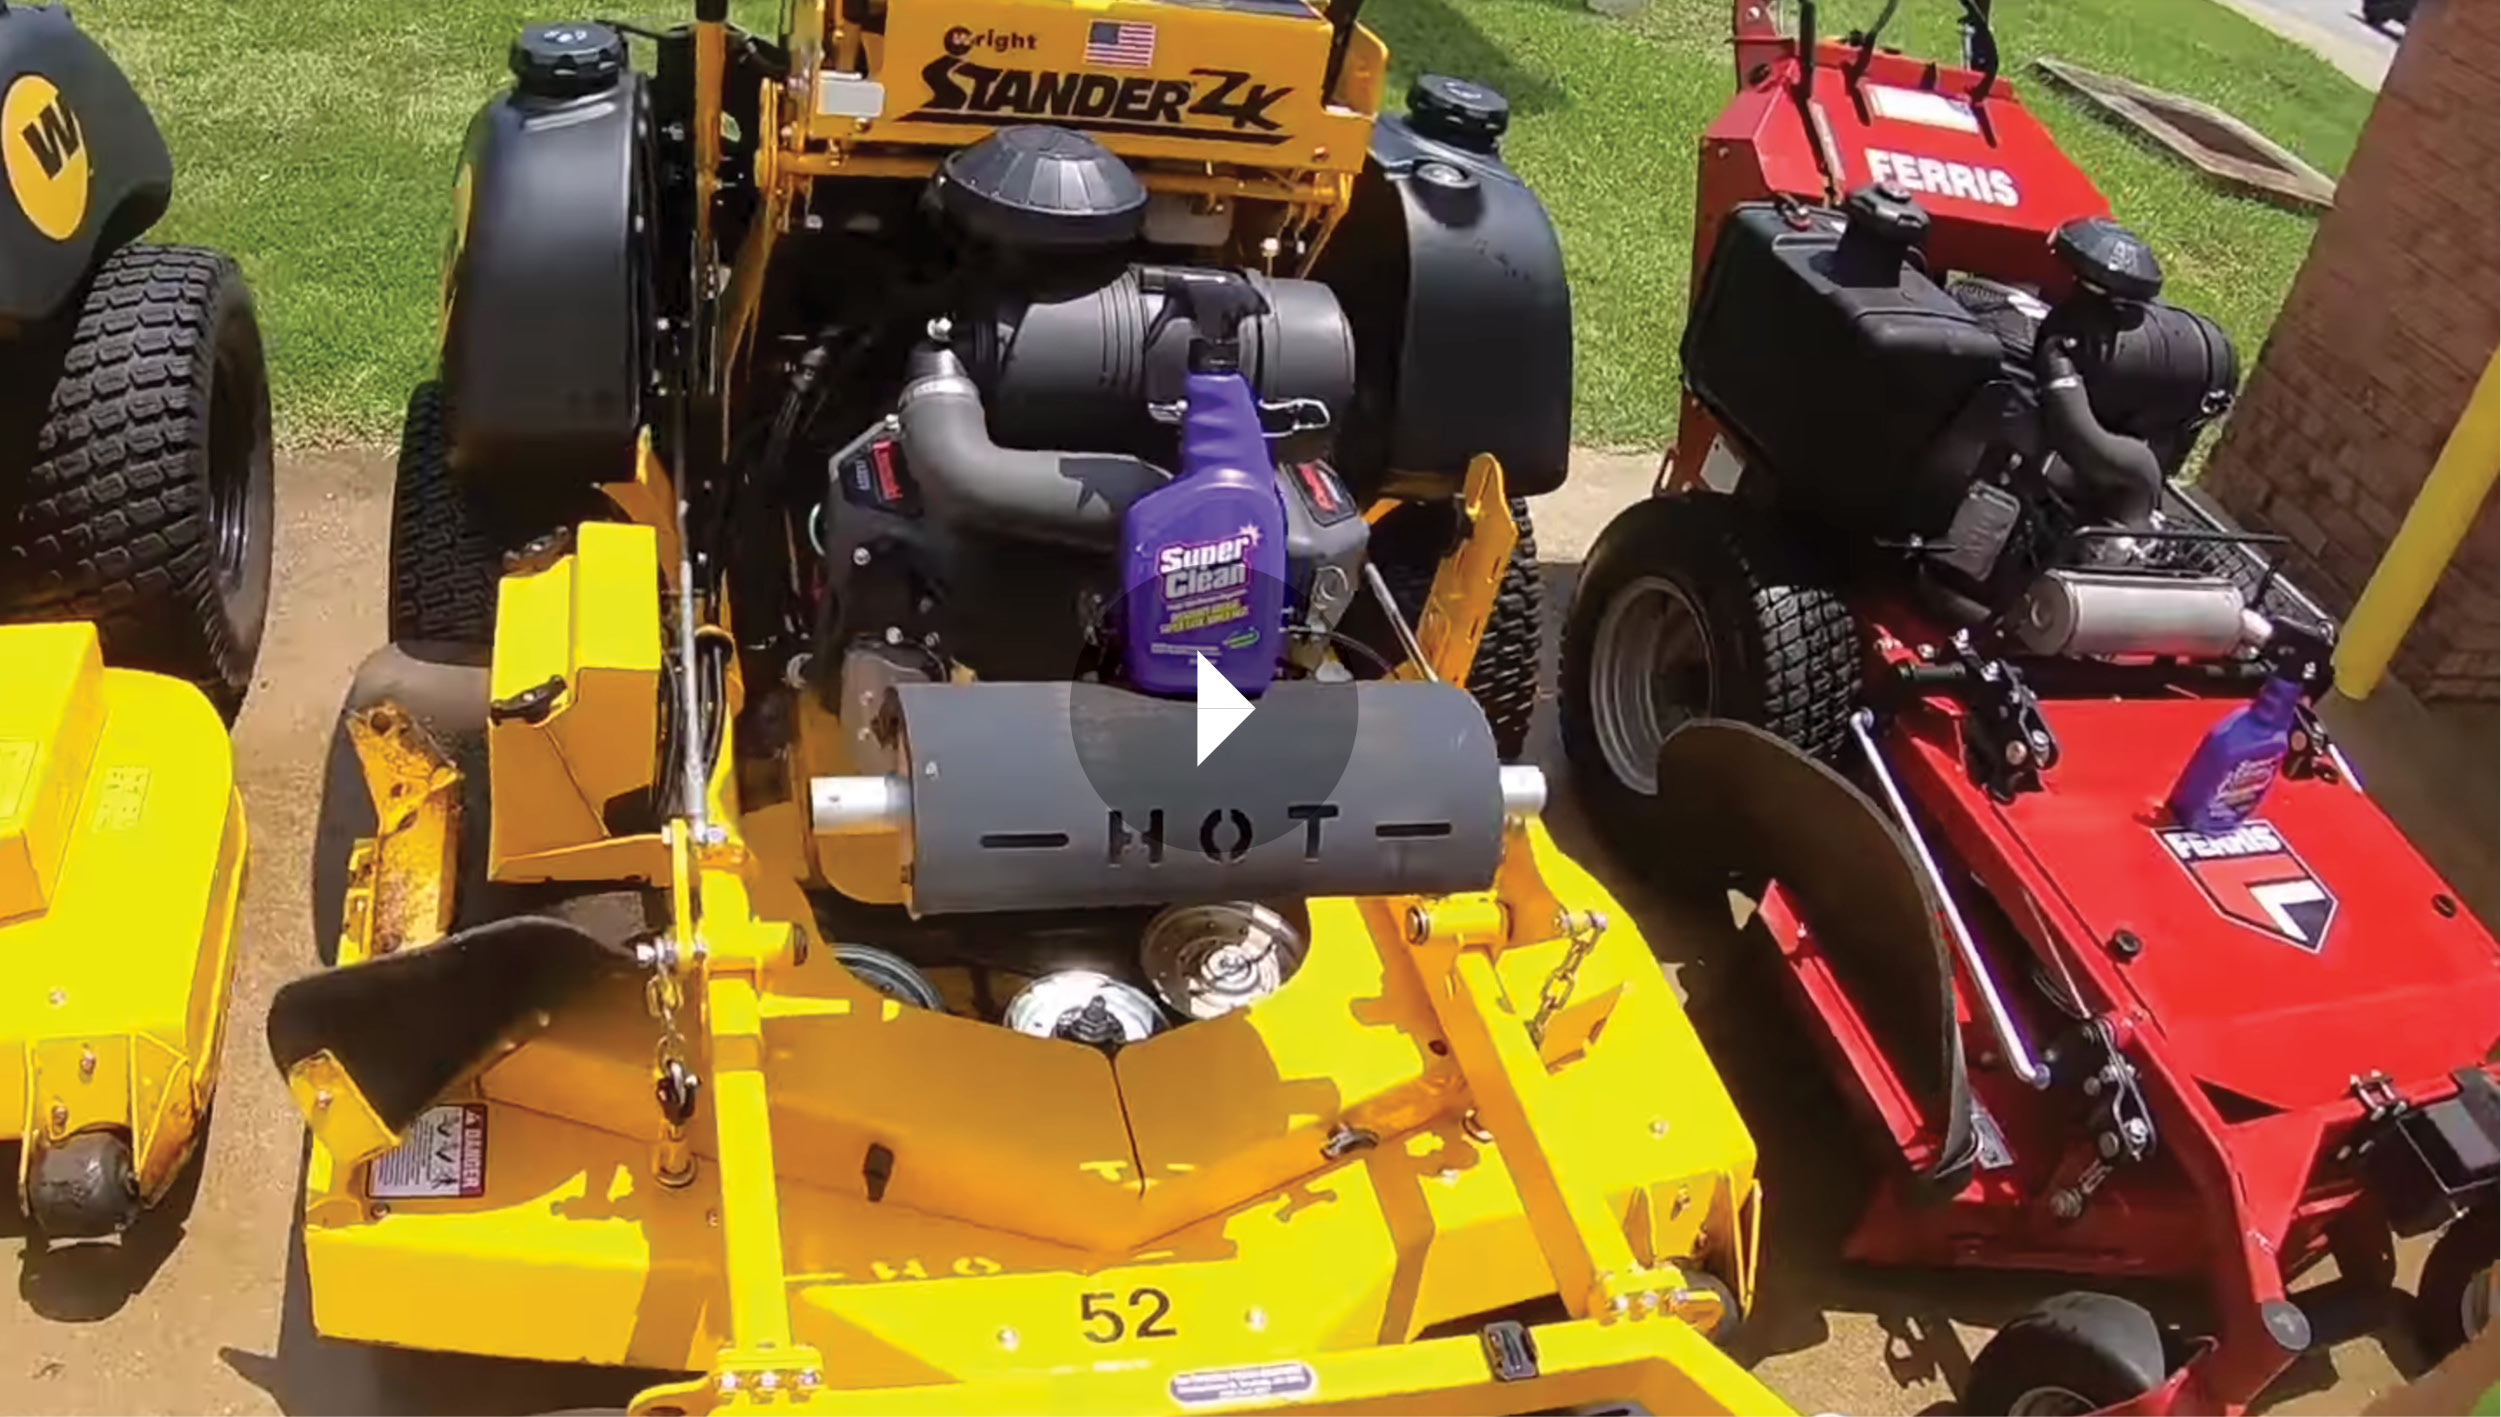 Still frame of stand-on mower with bottle of super clean